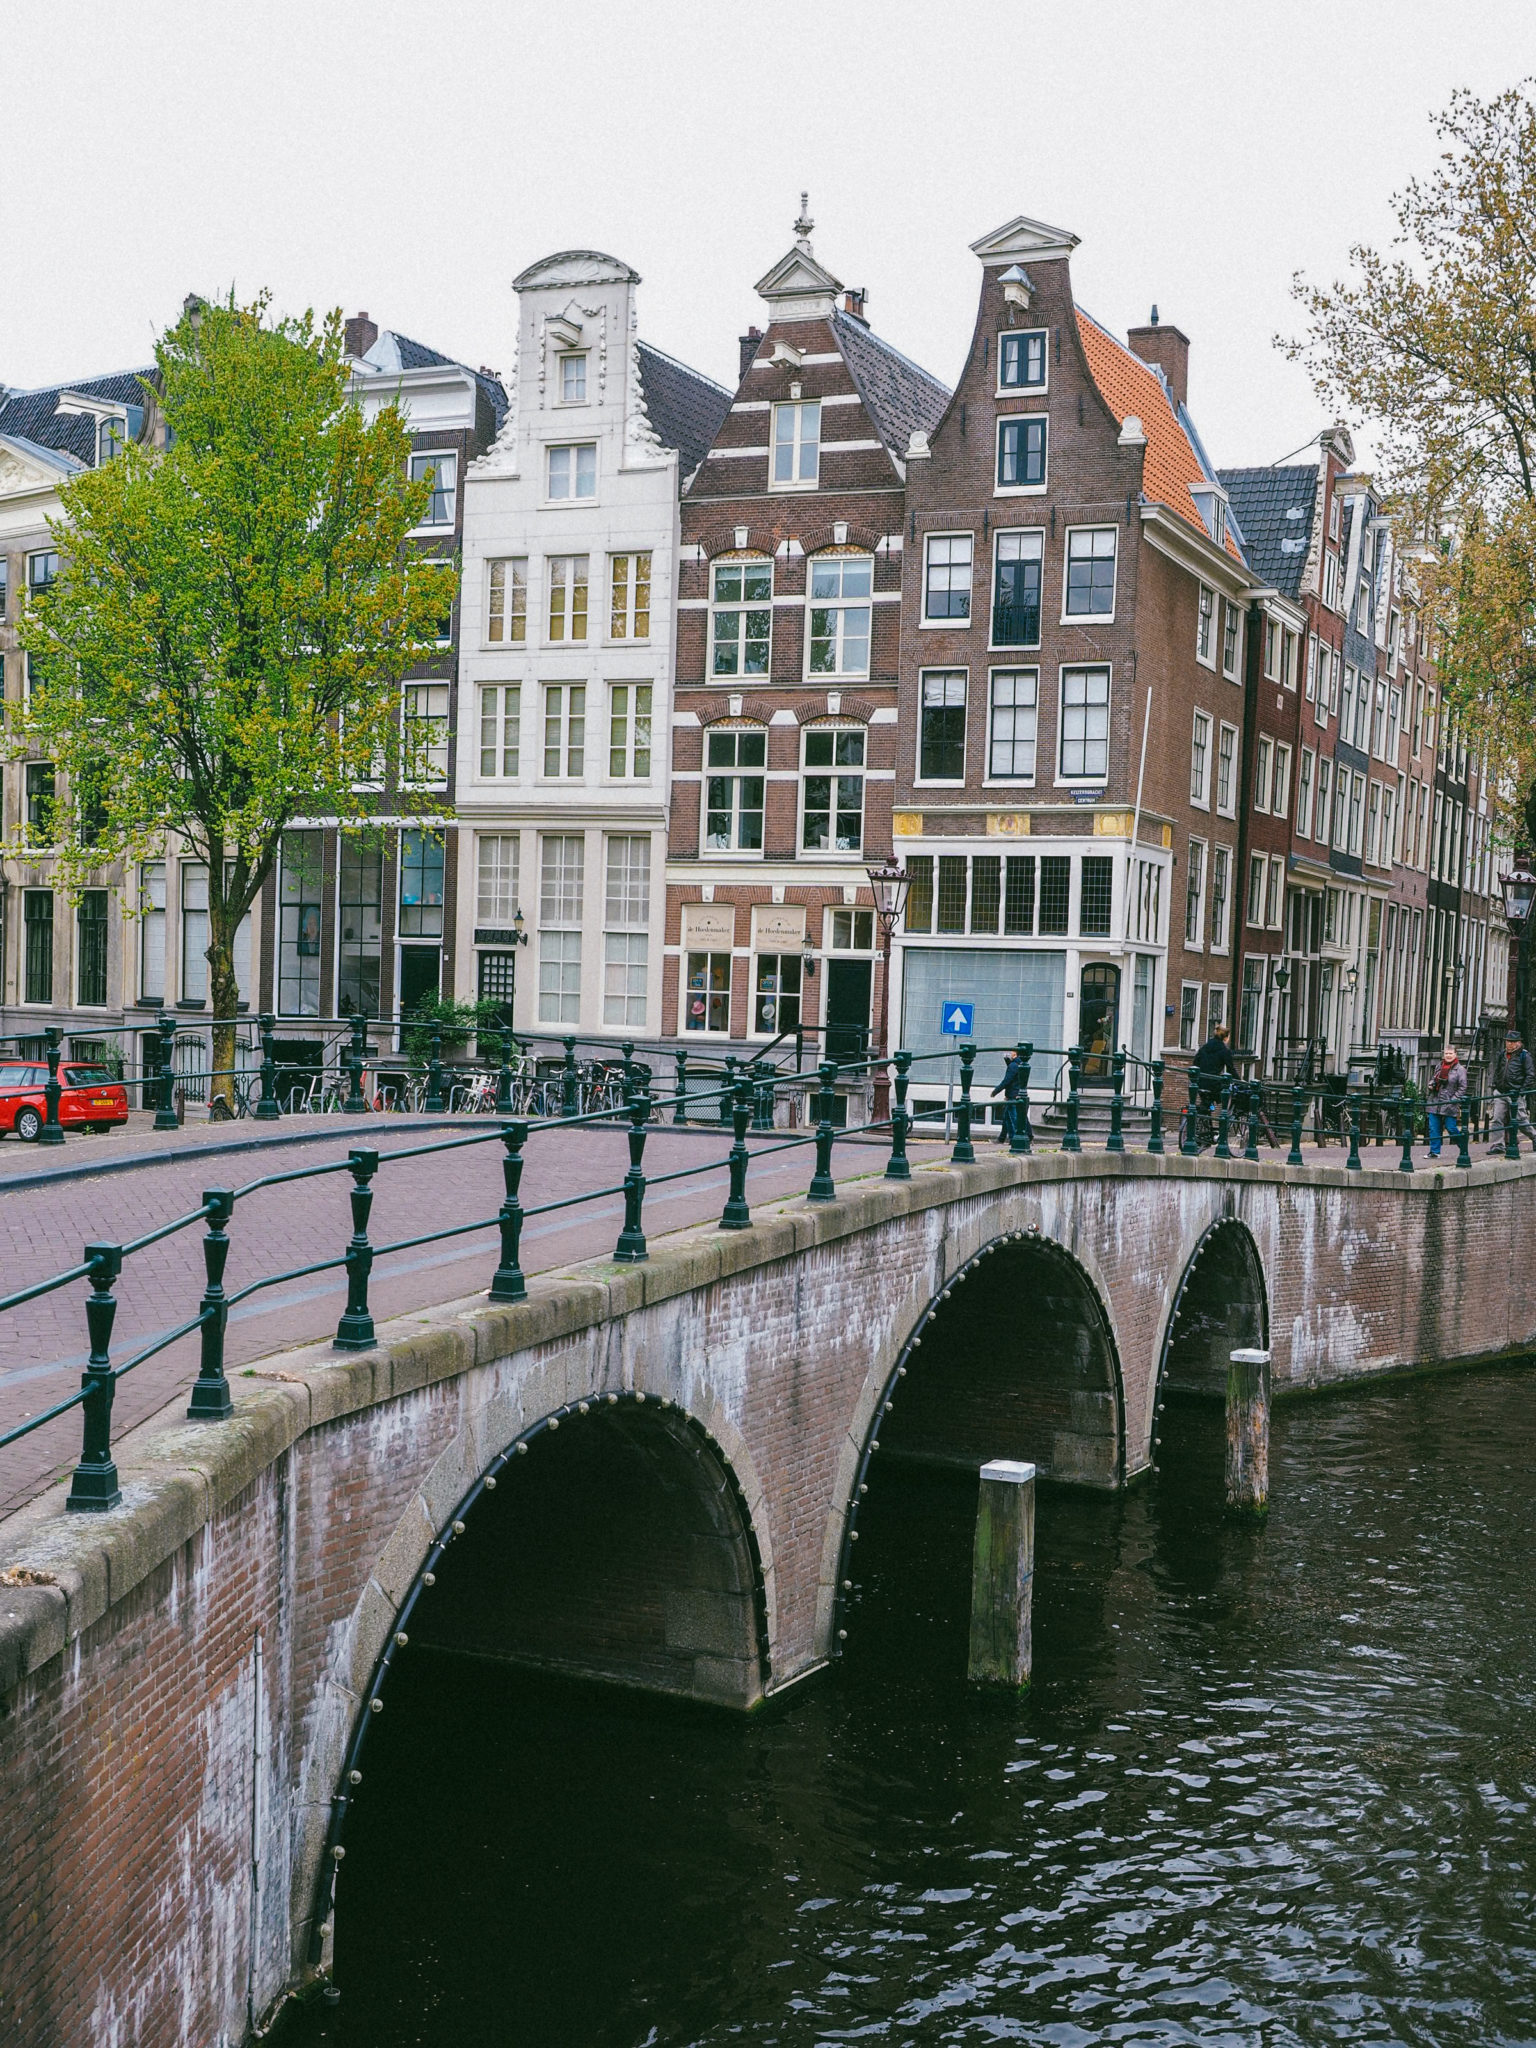 The Complete Hipster Guide to Amsterdam